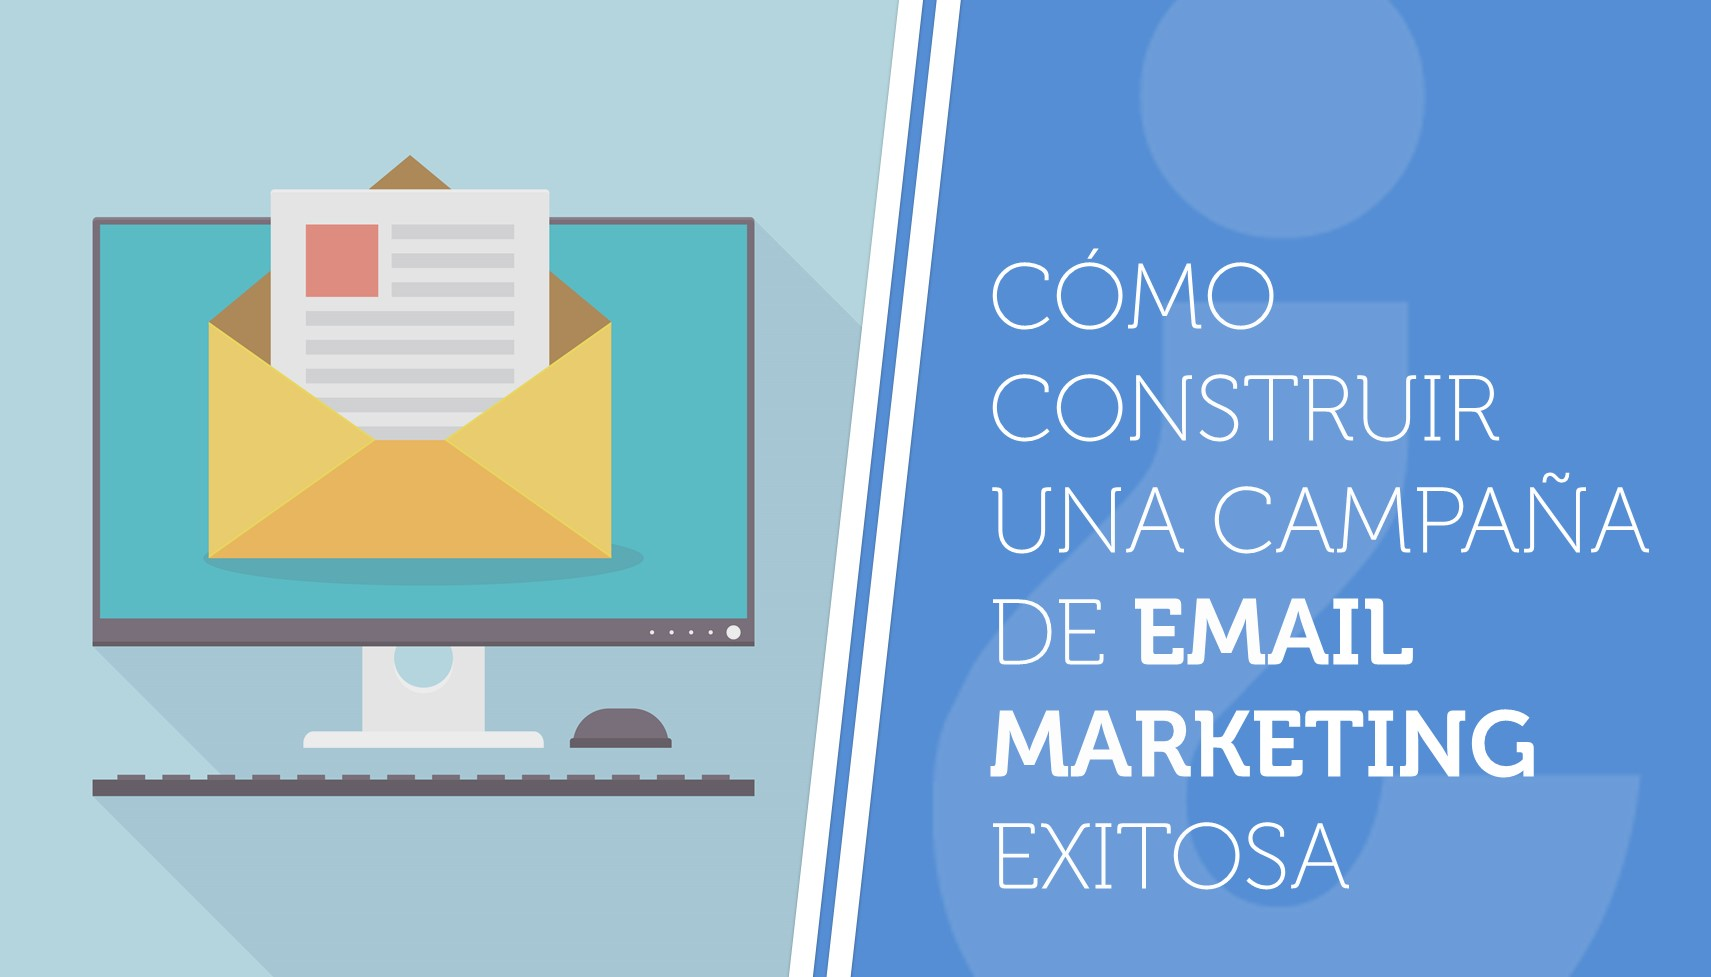 Cómo construir una campaña de email marketing exitosa